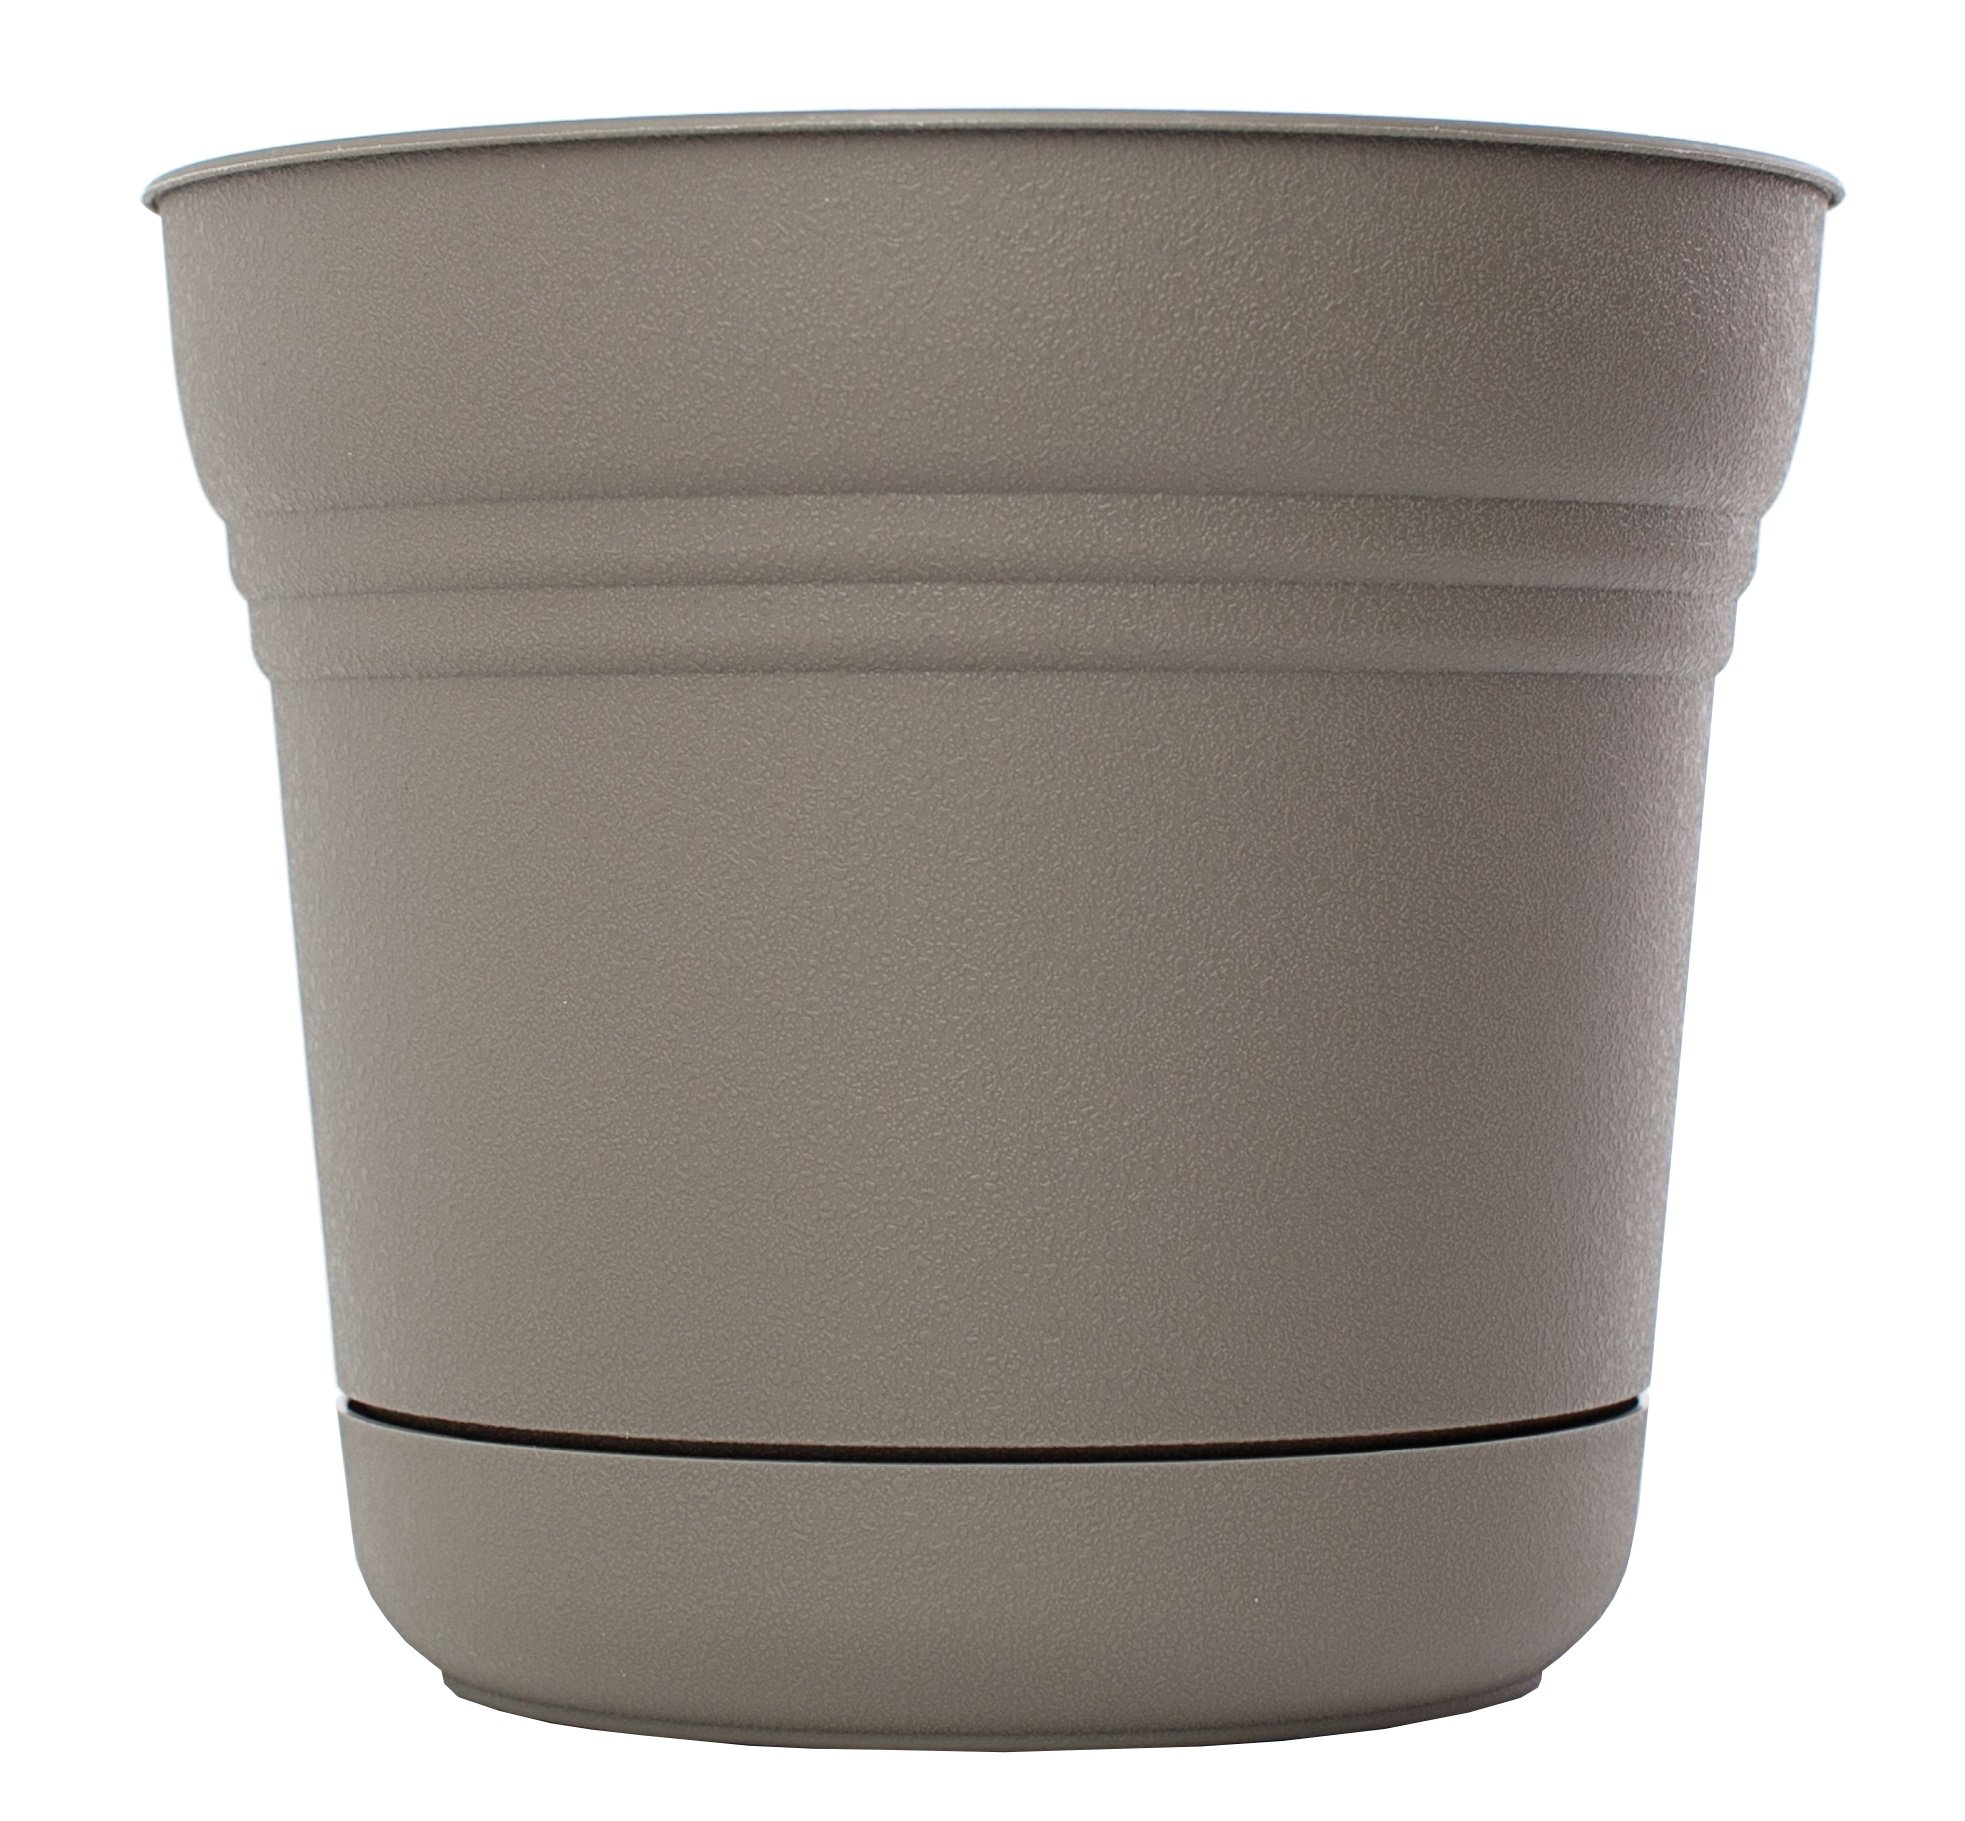 Bloem SP1260 Saturn Planter, 12-Inch, Peppercorn